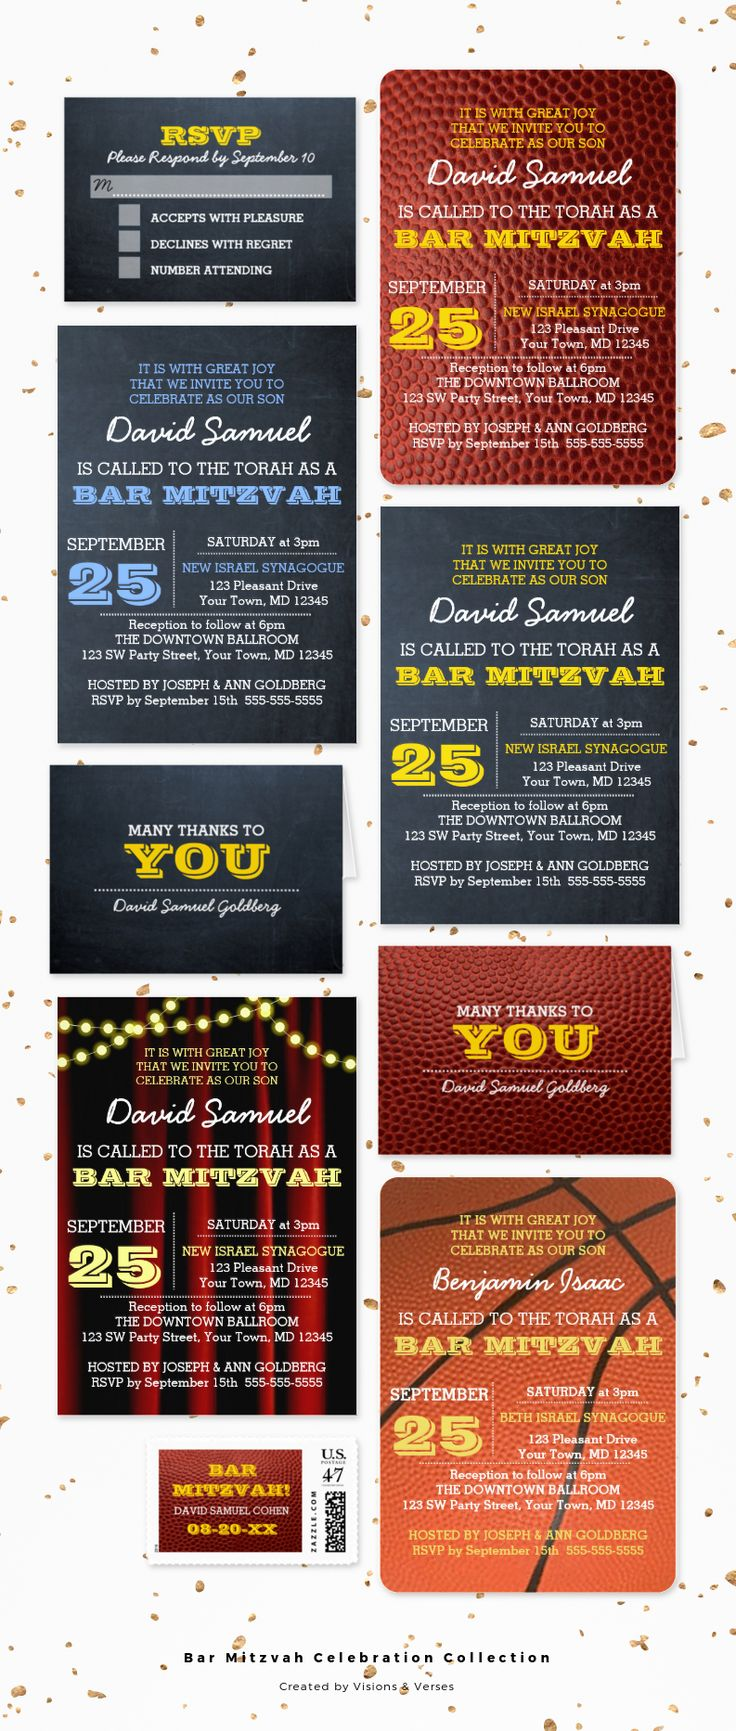 Bar Mitzvah invitations and coordinating stationary and party products for a celebration to remember!